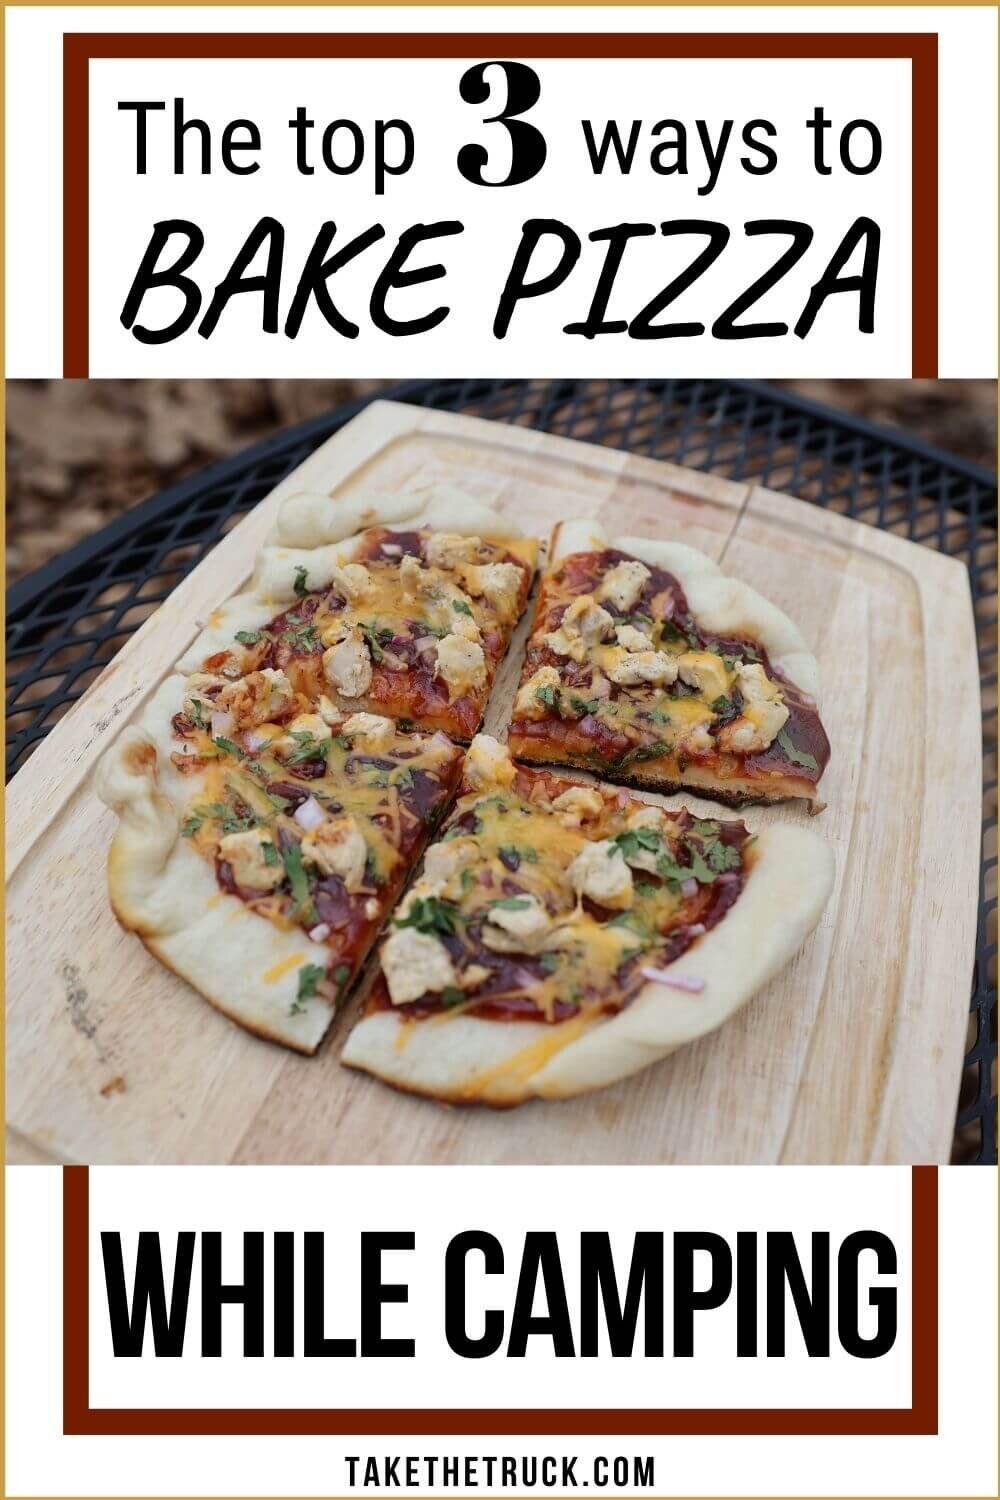 Want pizza while camping? Here's 3 easy options for enjoying camping pizza: dutch oven pizza in a cast iron skillet, pie iron pizza (aka pudgy pie pizza), and melty campfire pizza.